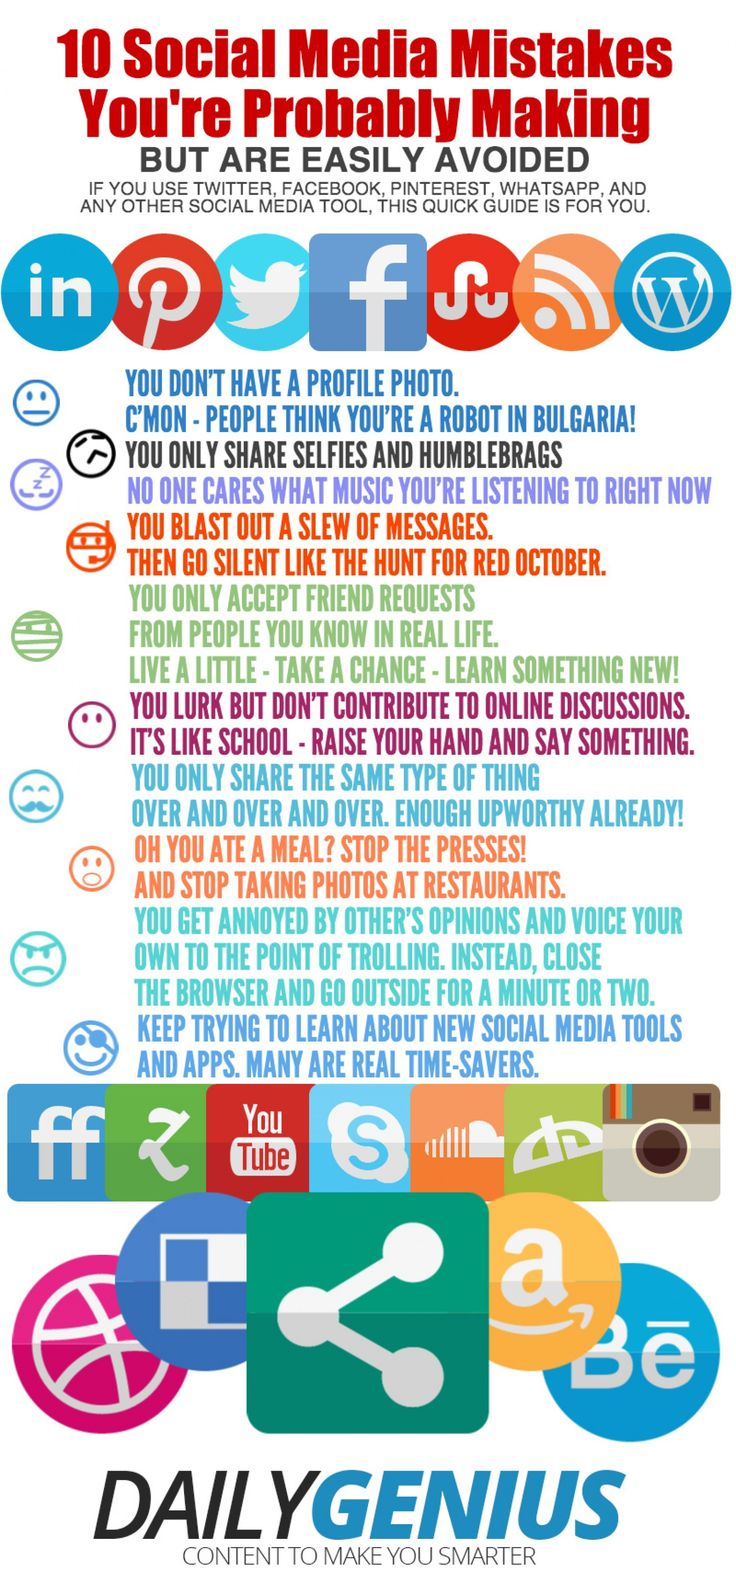 10 social media mistakes you're probably making but are easily avoided. #infographic